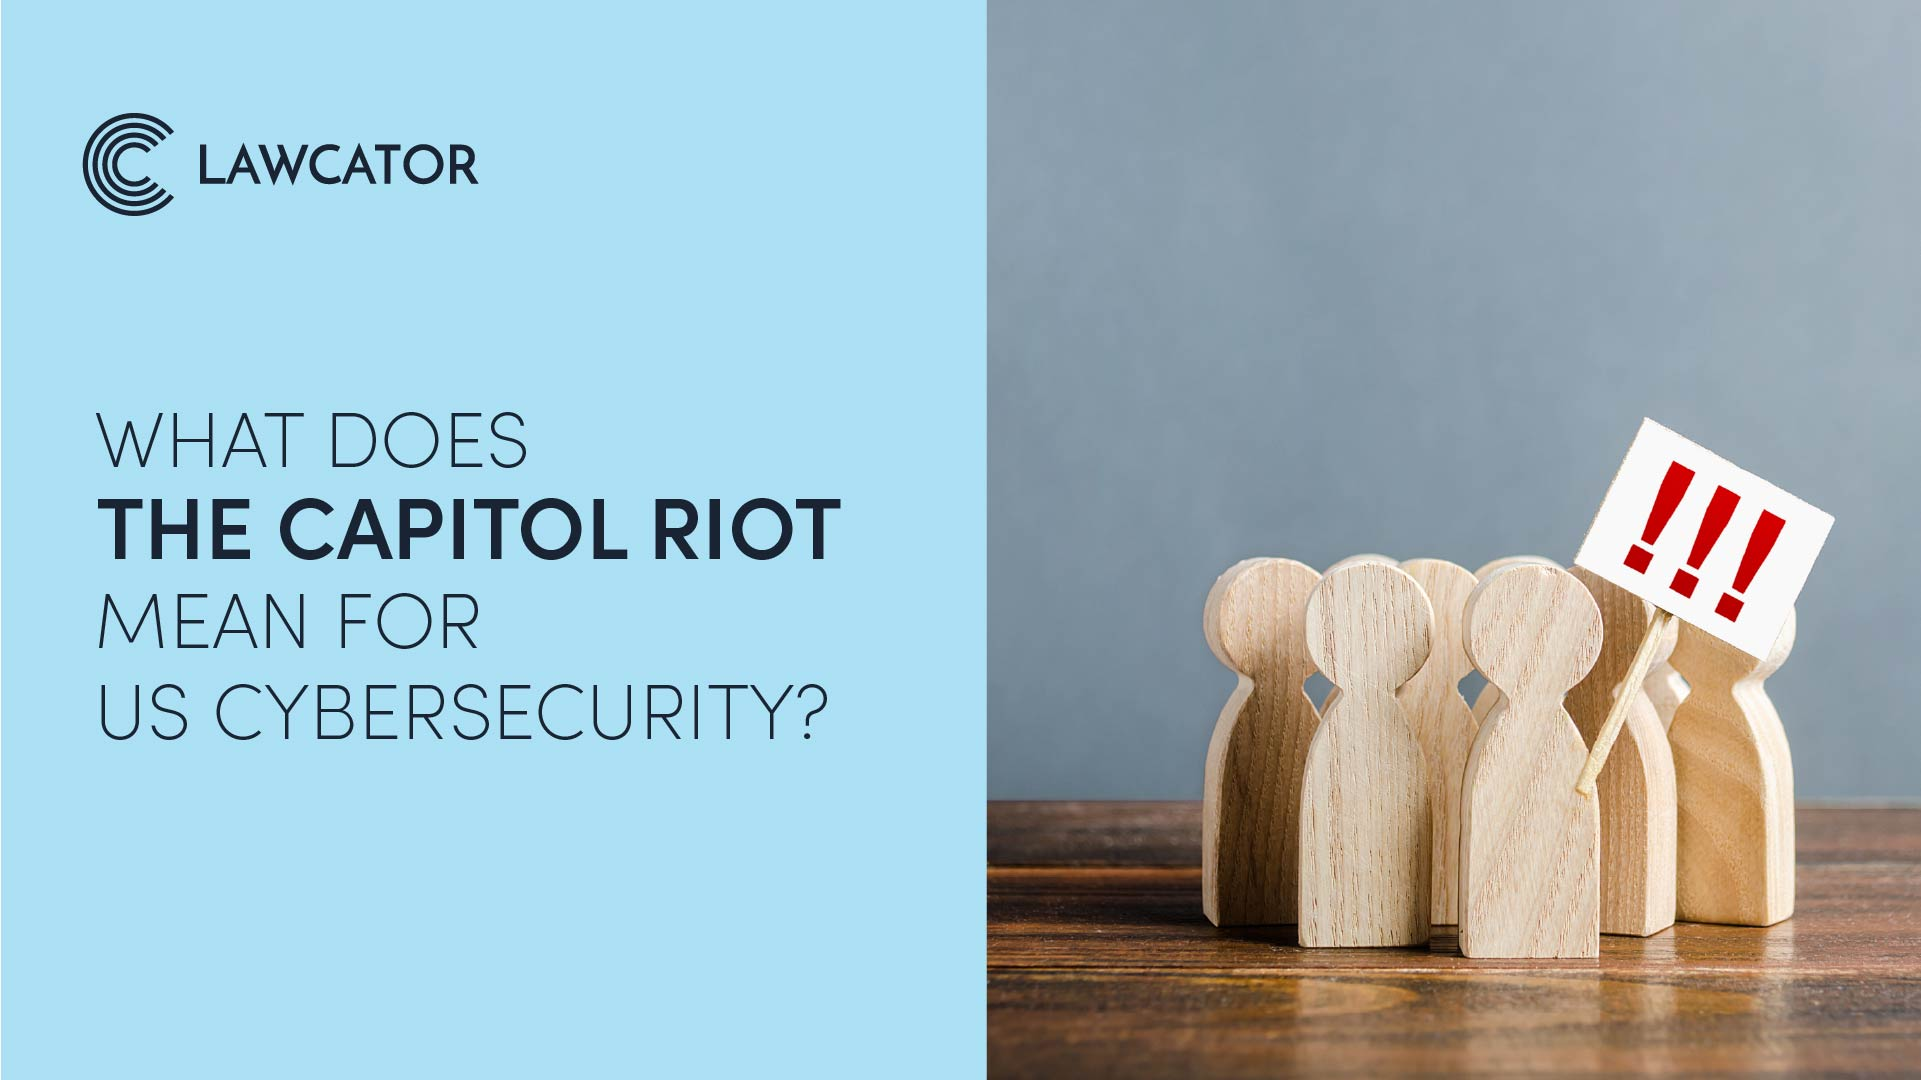 What does the Capitol riot mean for US cybersecurity?